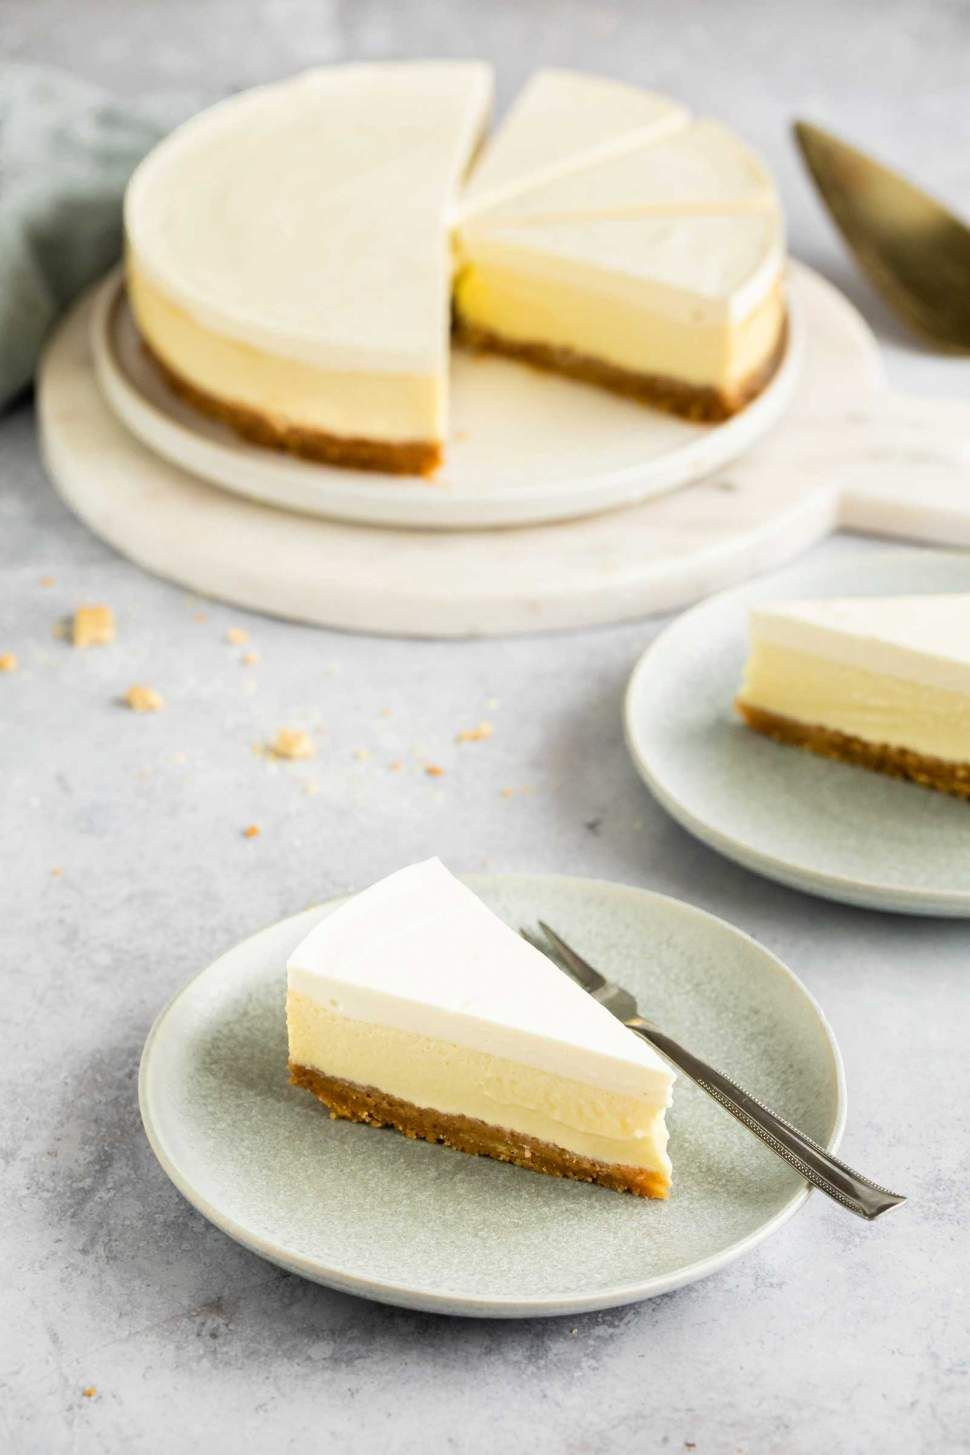 Sour Cream Cheesecake Recipe In 2020 Sour Cream Cheesecake Cheesecake Recipes Sour Cream Recipes